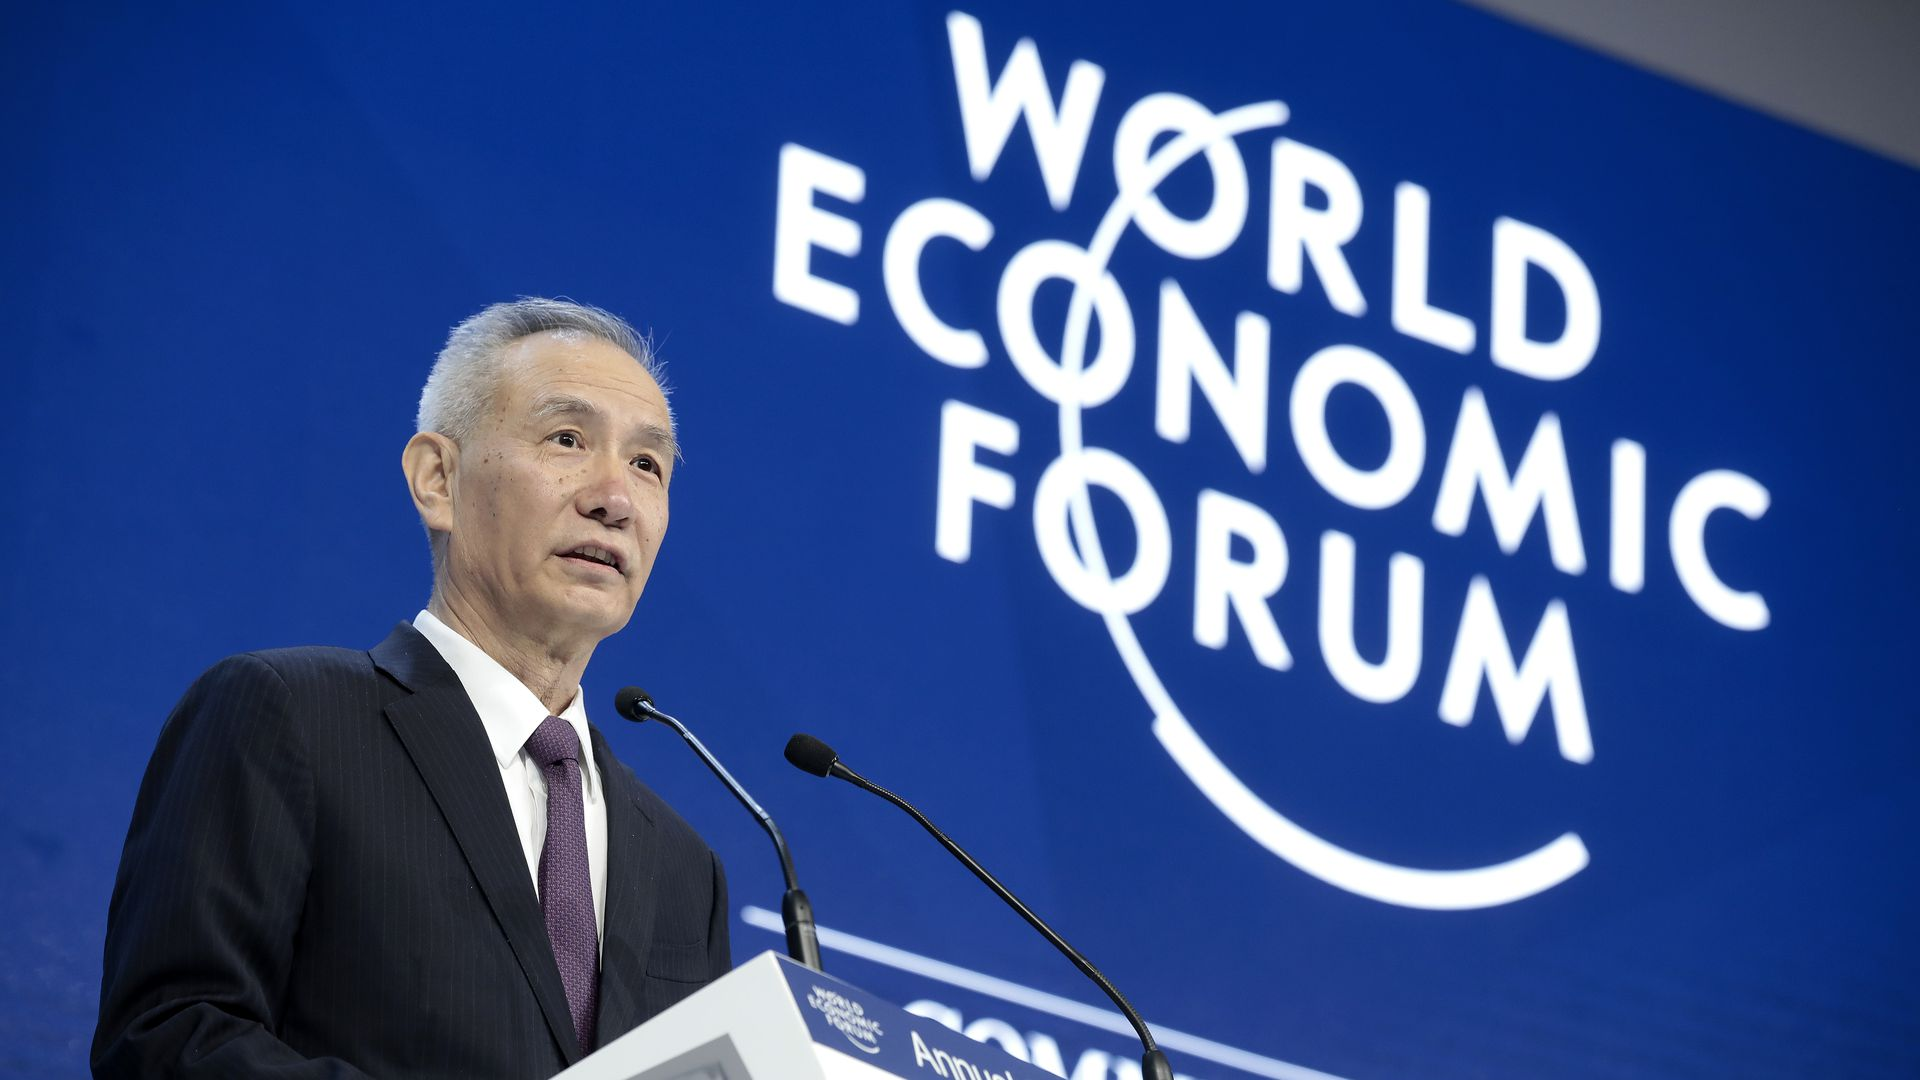 Liu He, director of the central leading group of the Communist Party of China, speaks during a special session on day two of the World Economic Forum